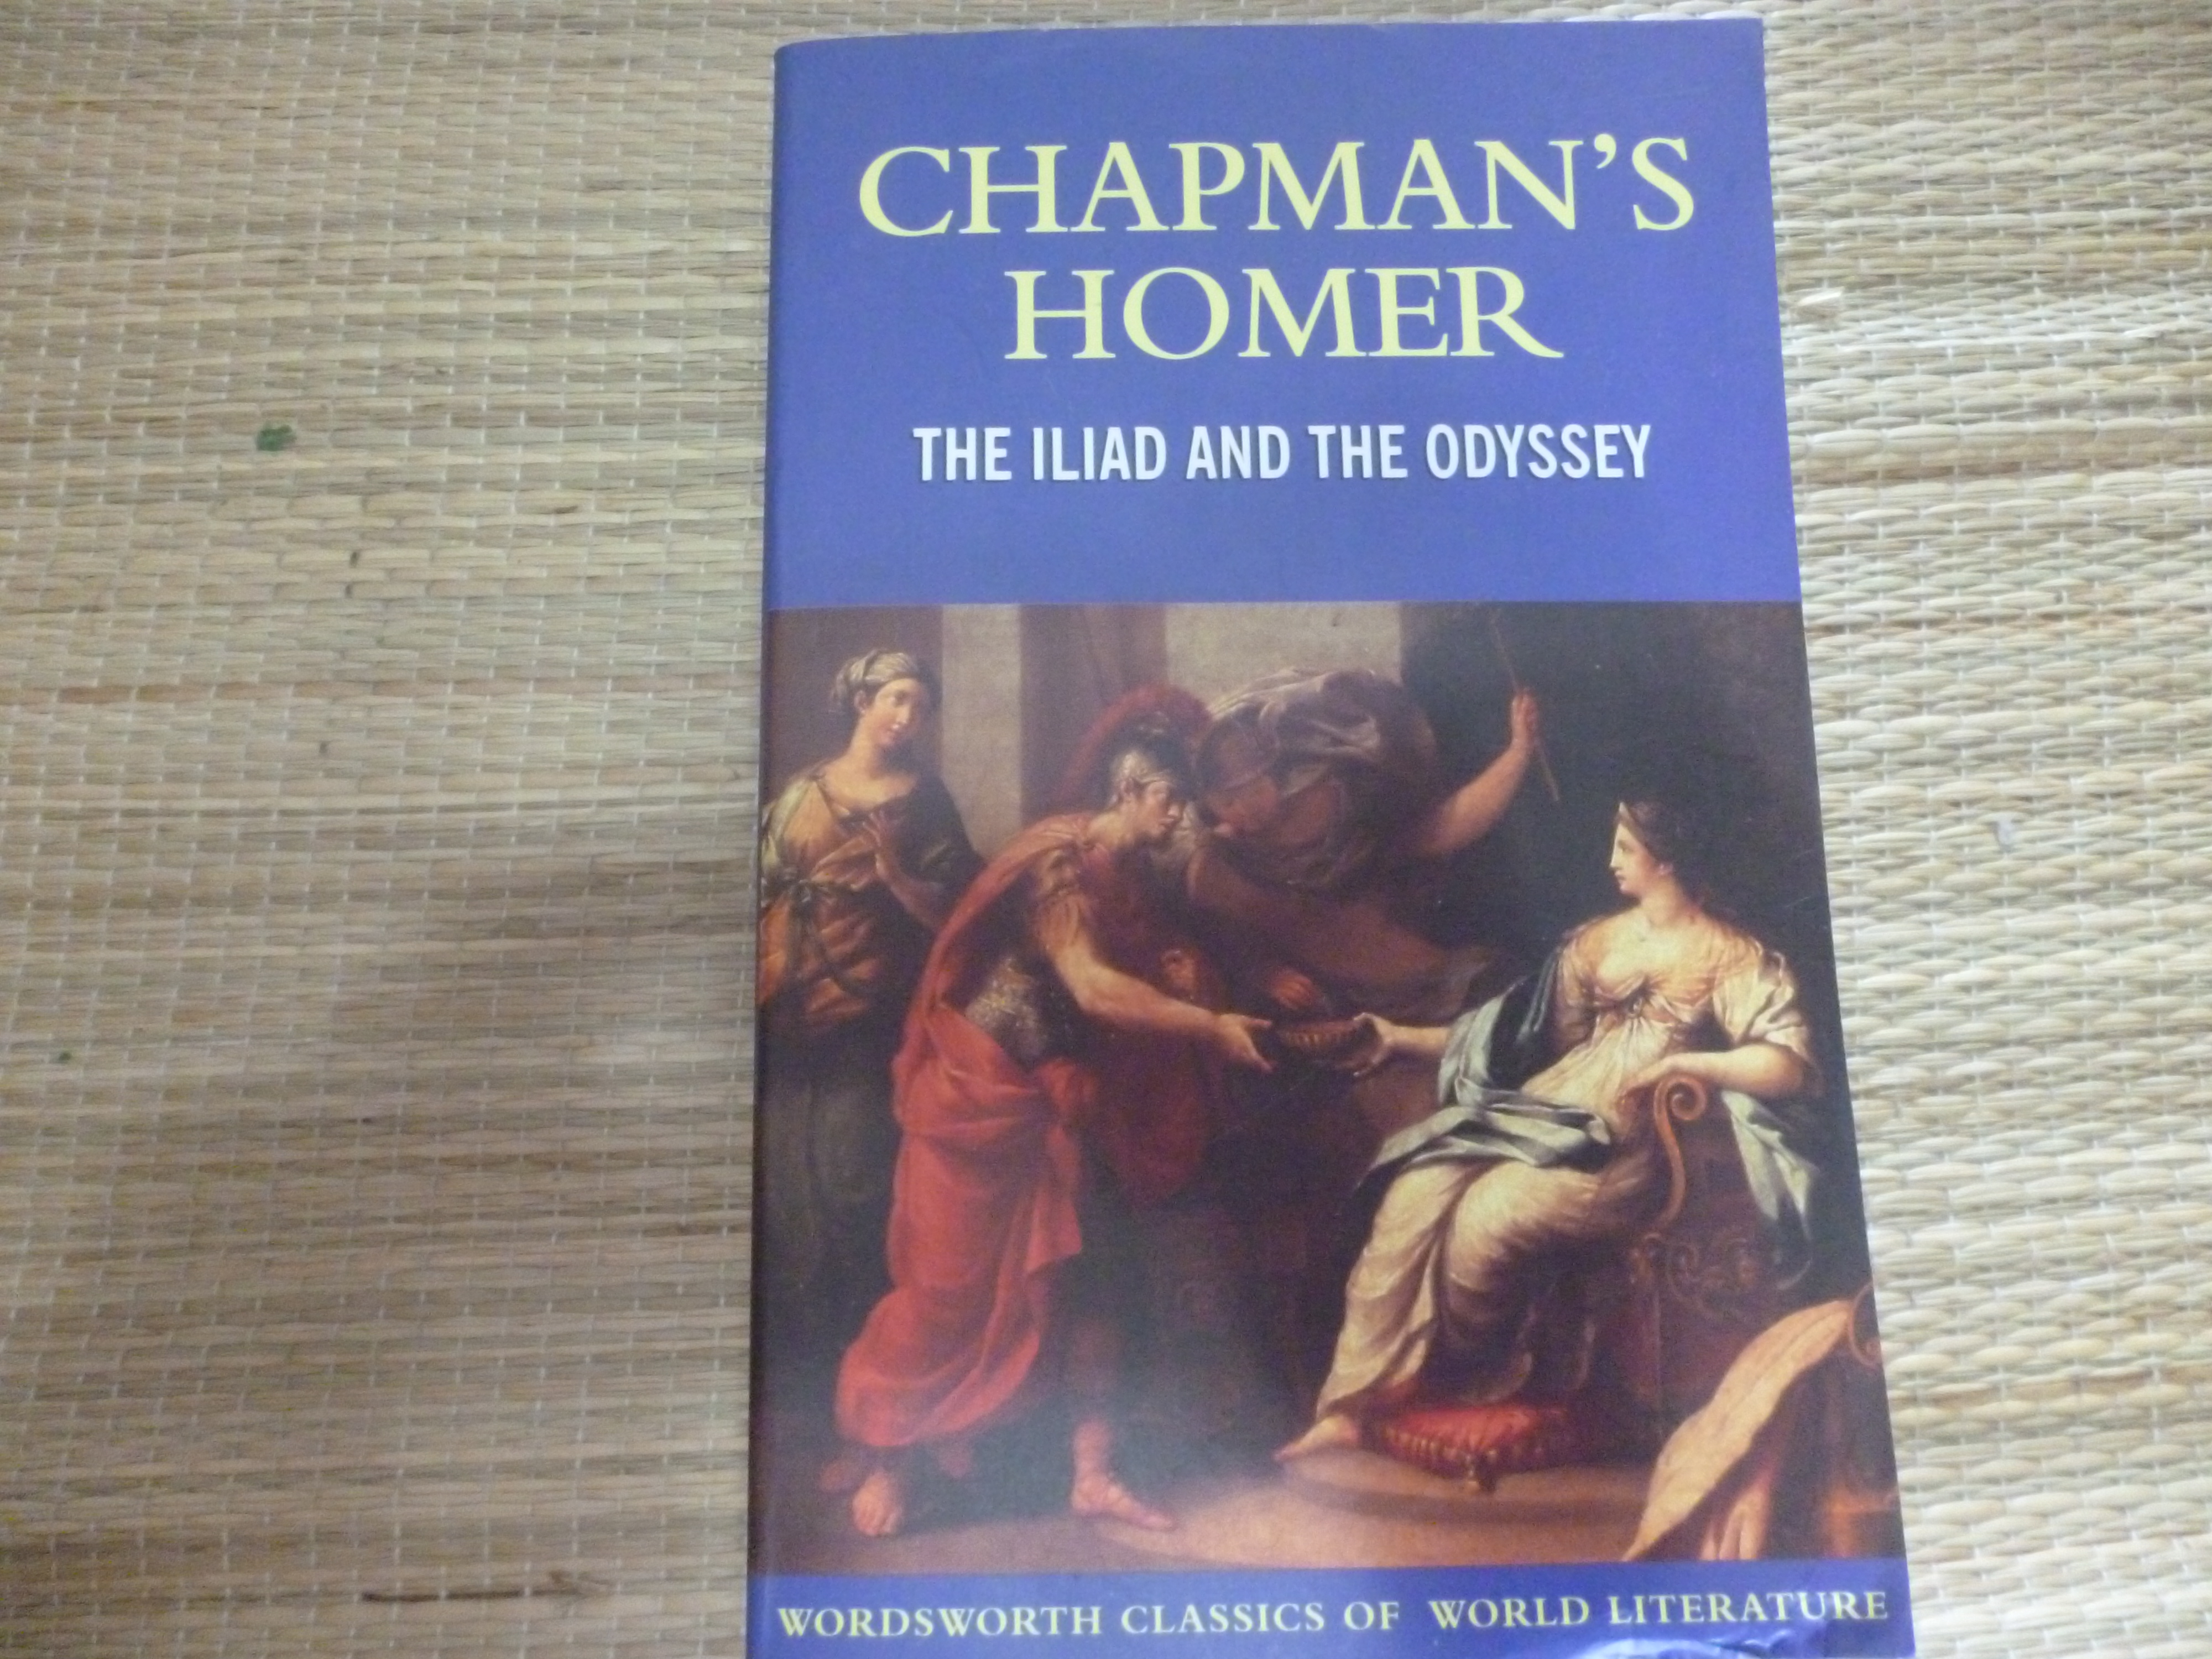 The Iliad and The Odyssey (Chapman's Homer)